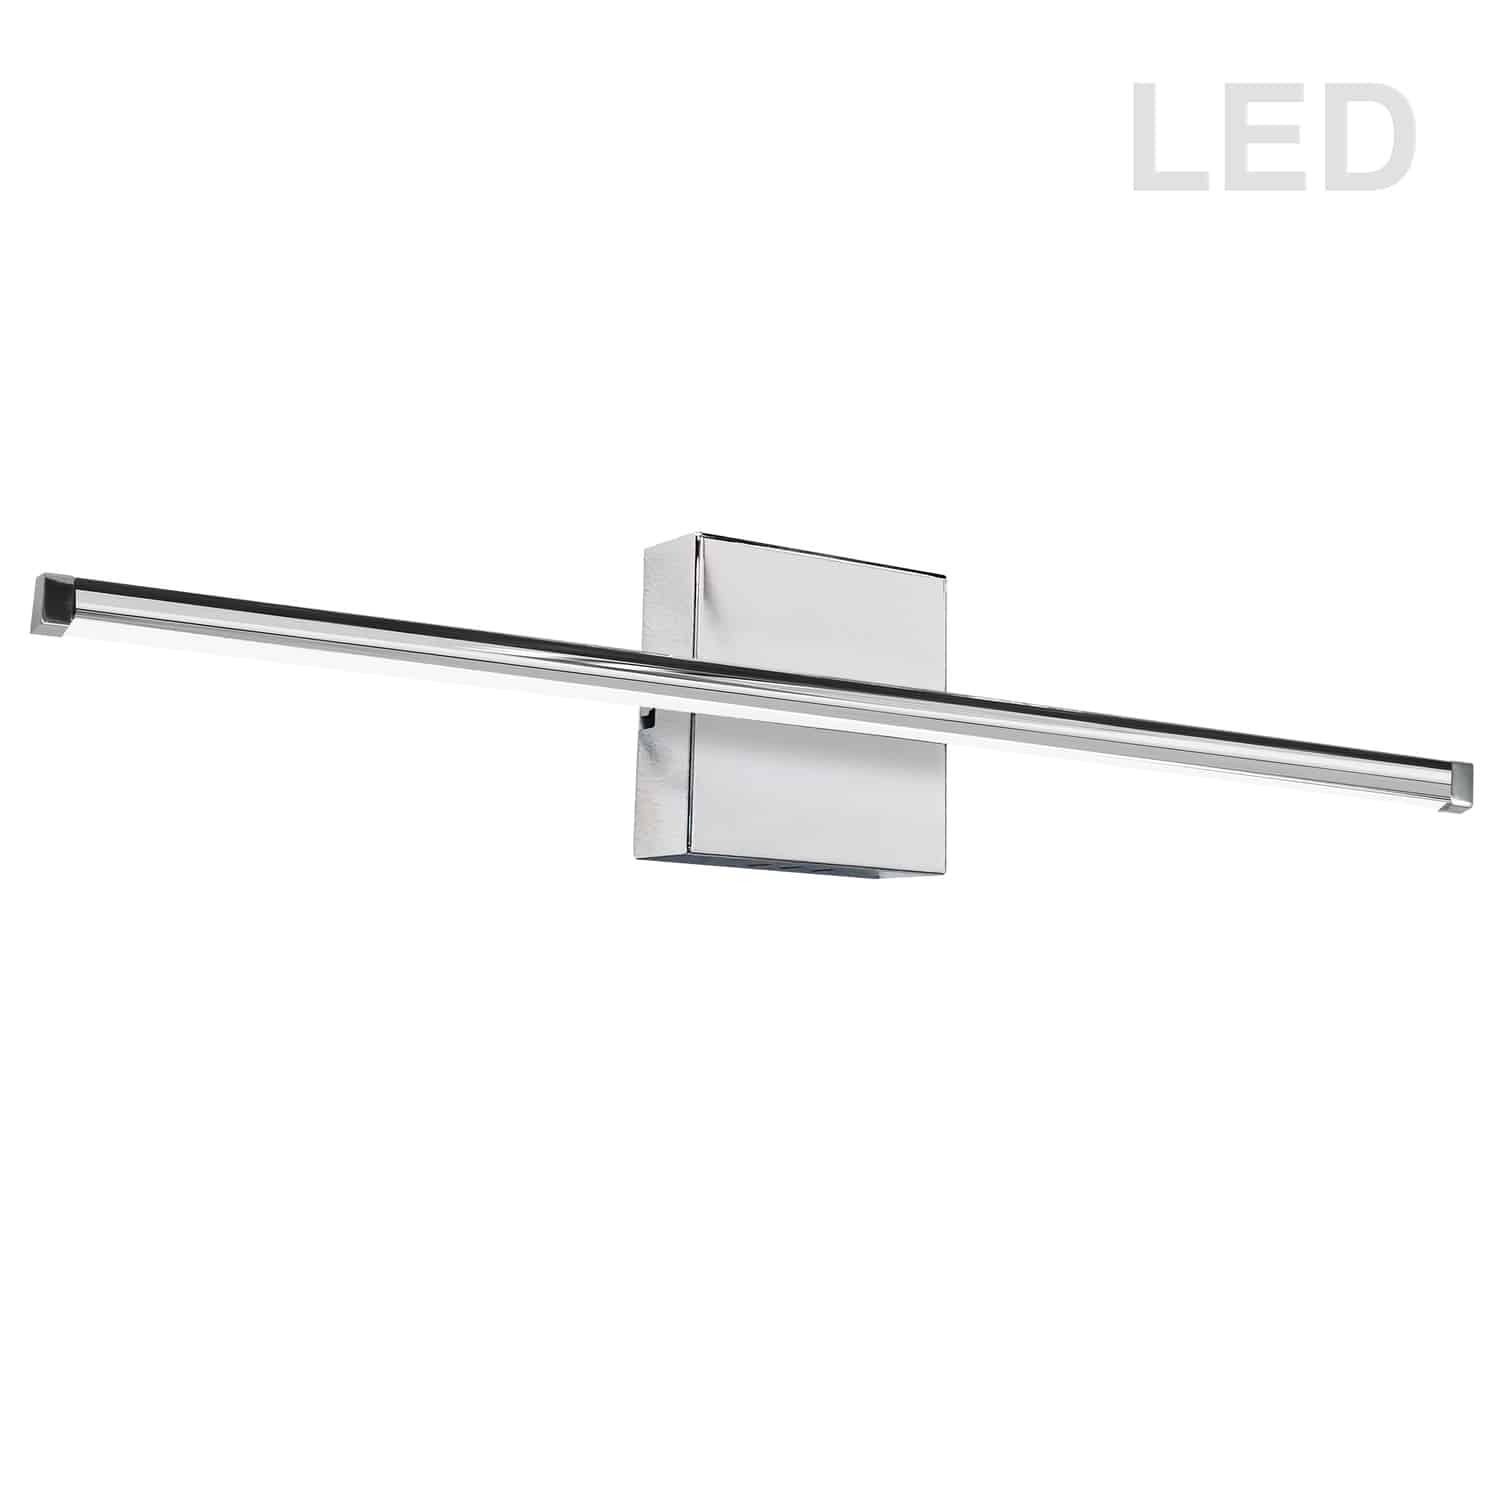 30W LED Wall Sconce, Polished Chrome with White Acrylic Diffuser